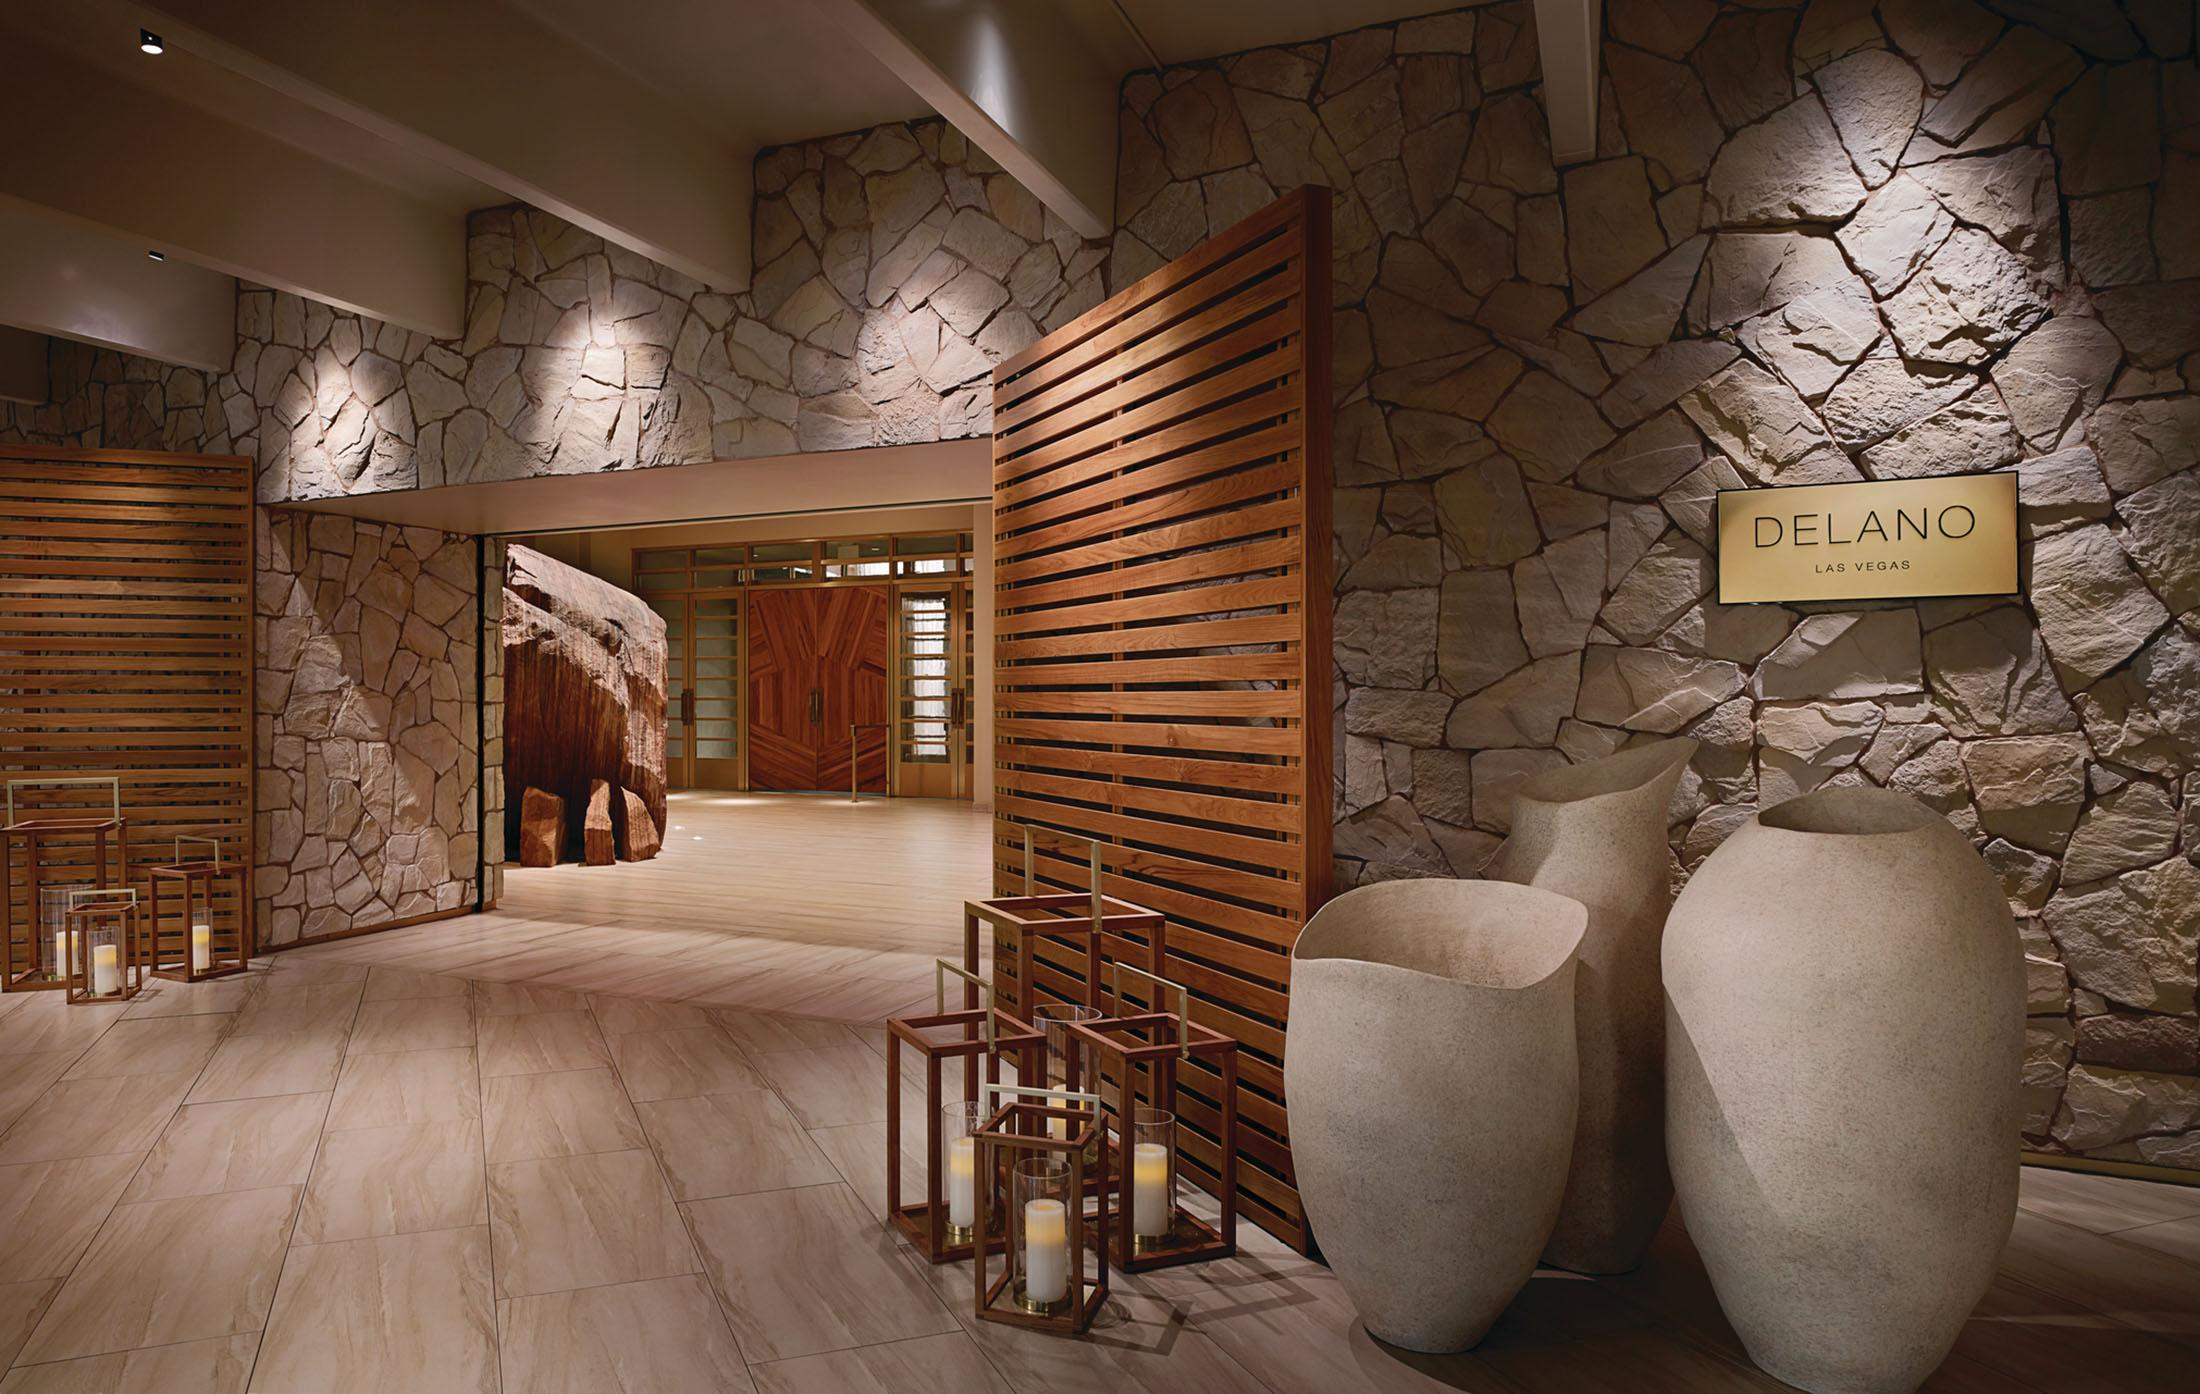 Hotel entrance surrounded by stone walls